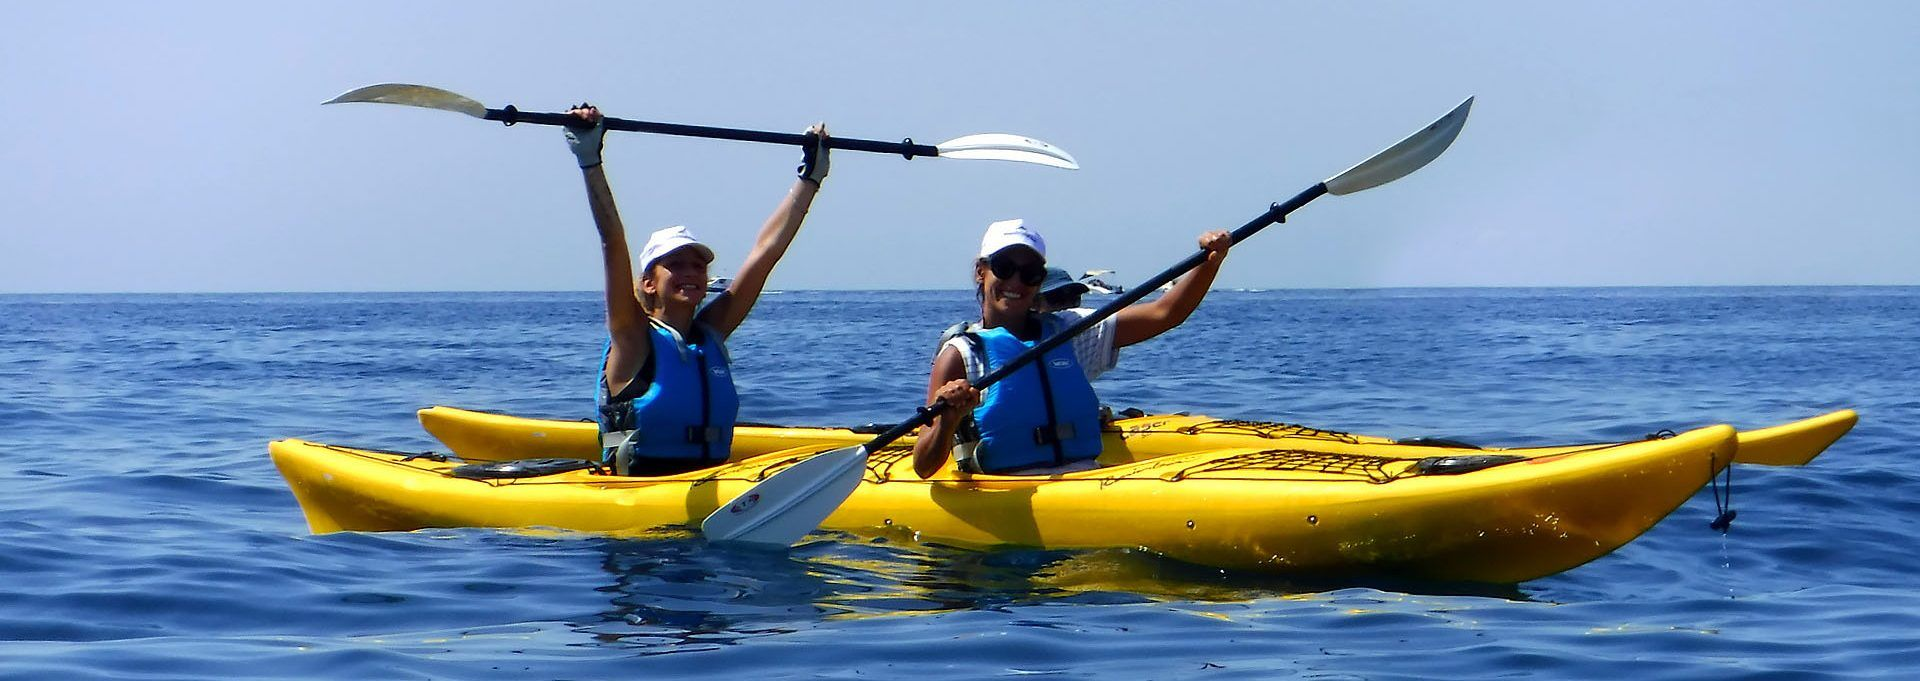 Santa Caterina Sea Kayak